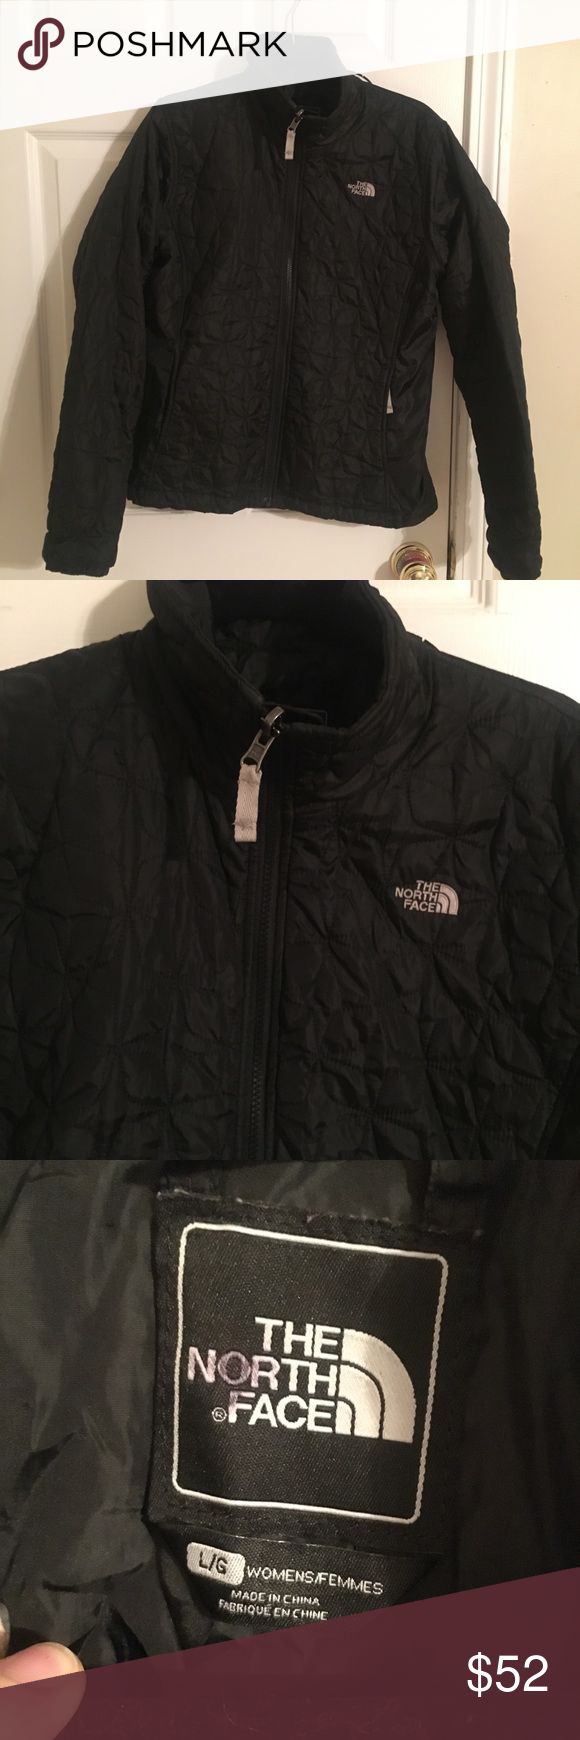 The North Face black puffer coat women's large Black puffer coat from The North Face. Women's size large. Good used condition! Bought this from the outlet for $150 and it doesn't fit me anymore! The North Face Jackets & Coats Puffers